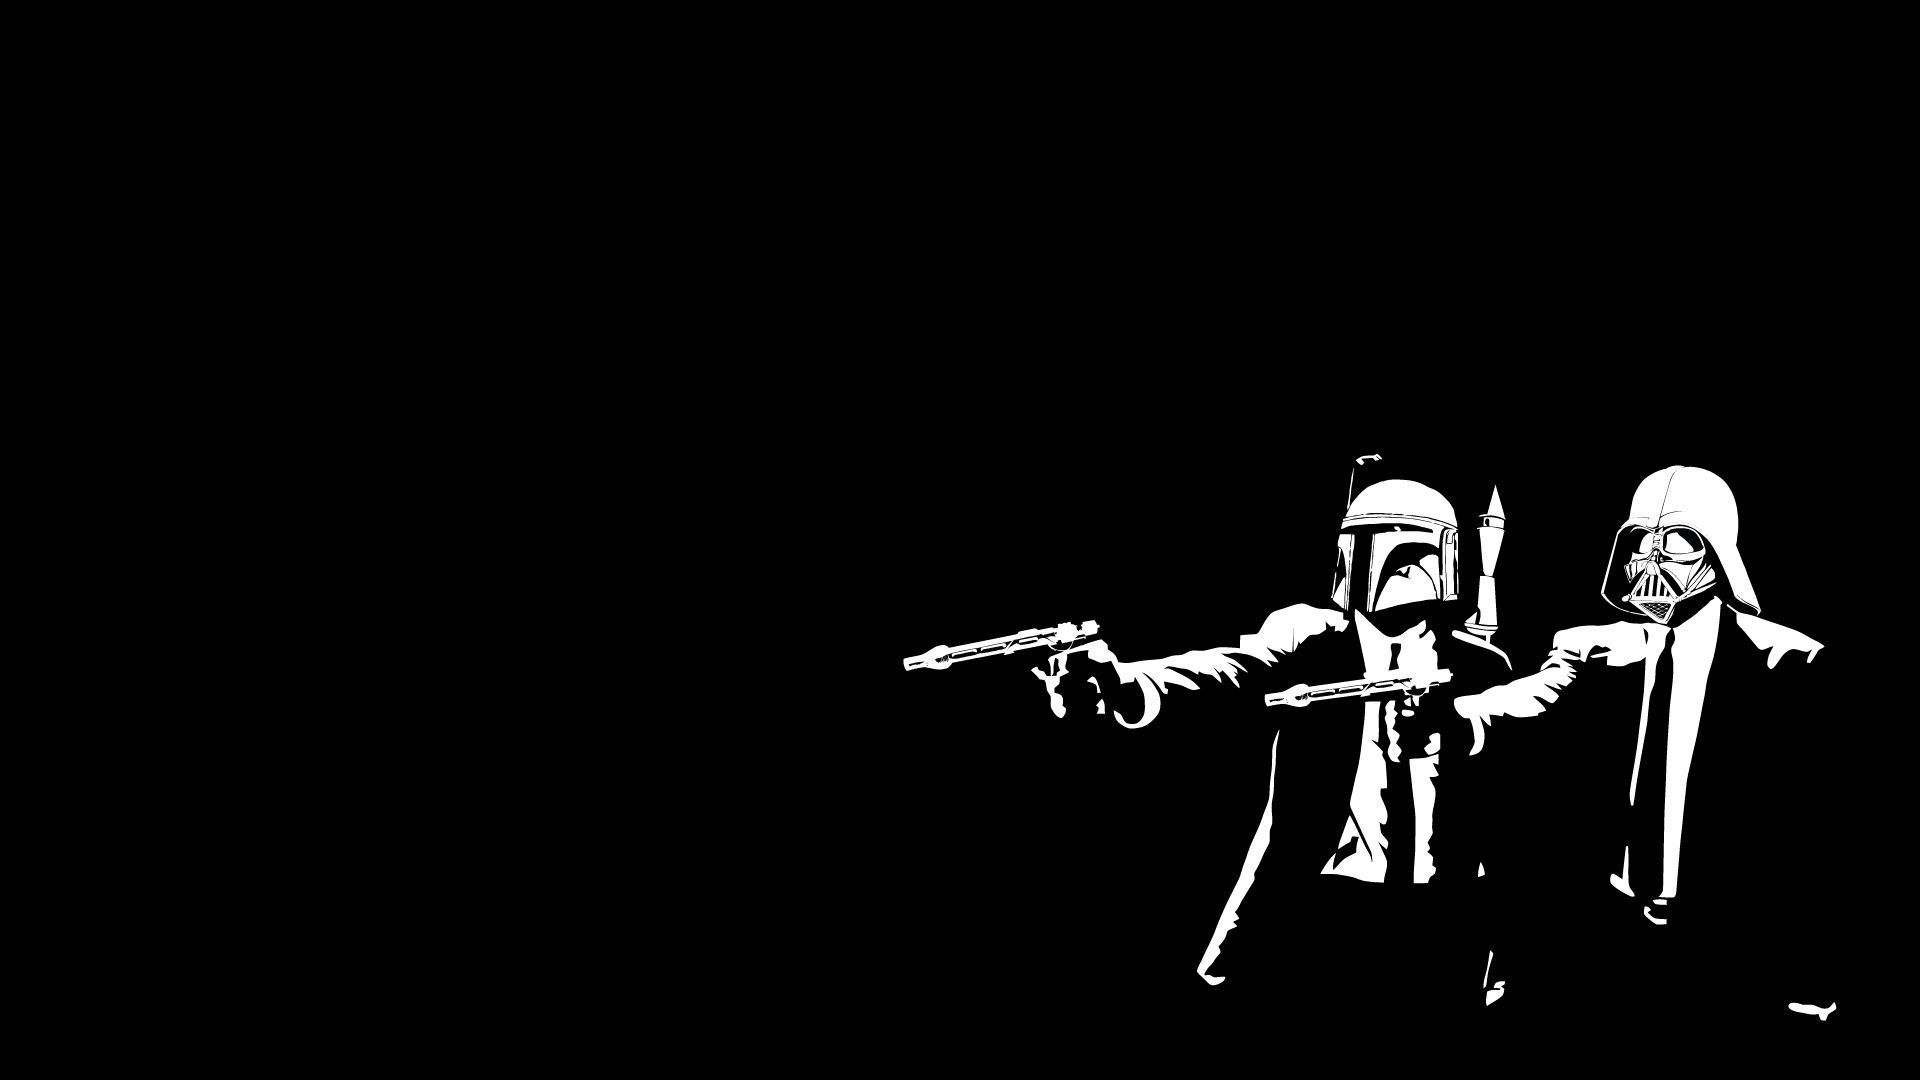 10 Most Popular Cool Star Wars Backgrounds FULL HD 1920×1080 For PC Background